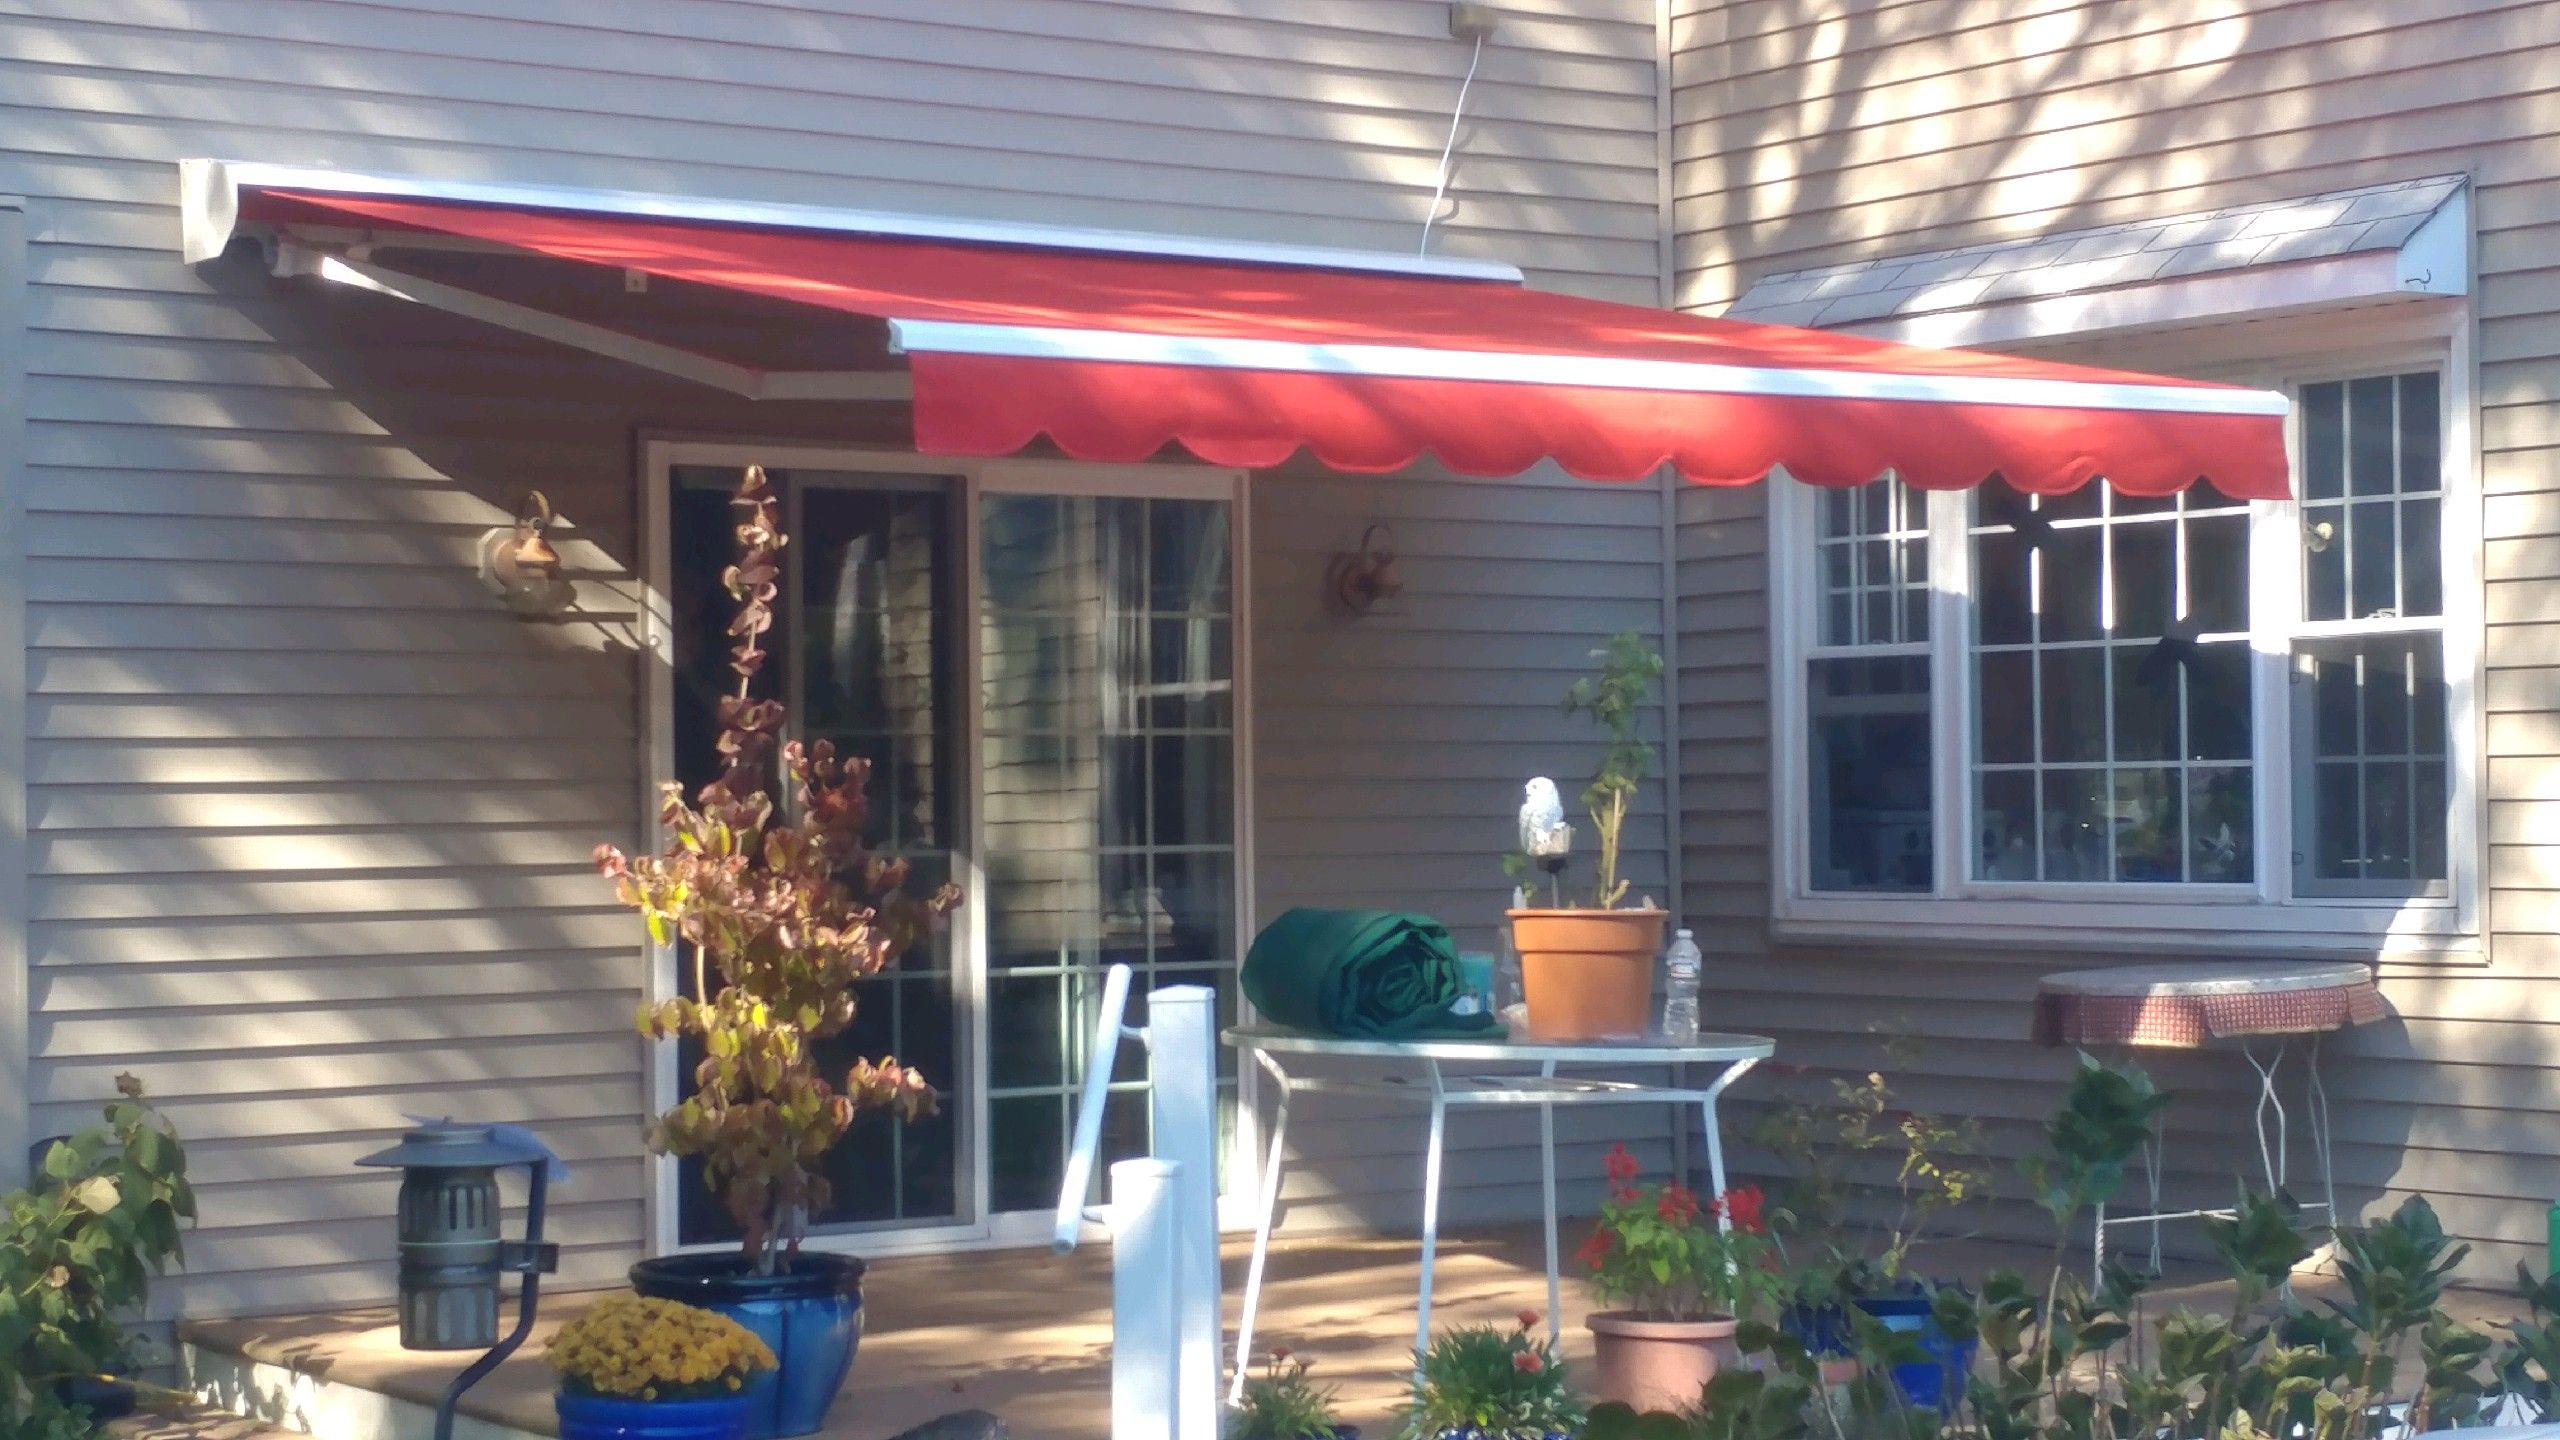 Retractable Awning In South Jersey Installation By Bill S Canvas Shop Retractable Awning Outdoor Decor Awning